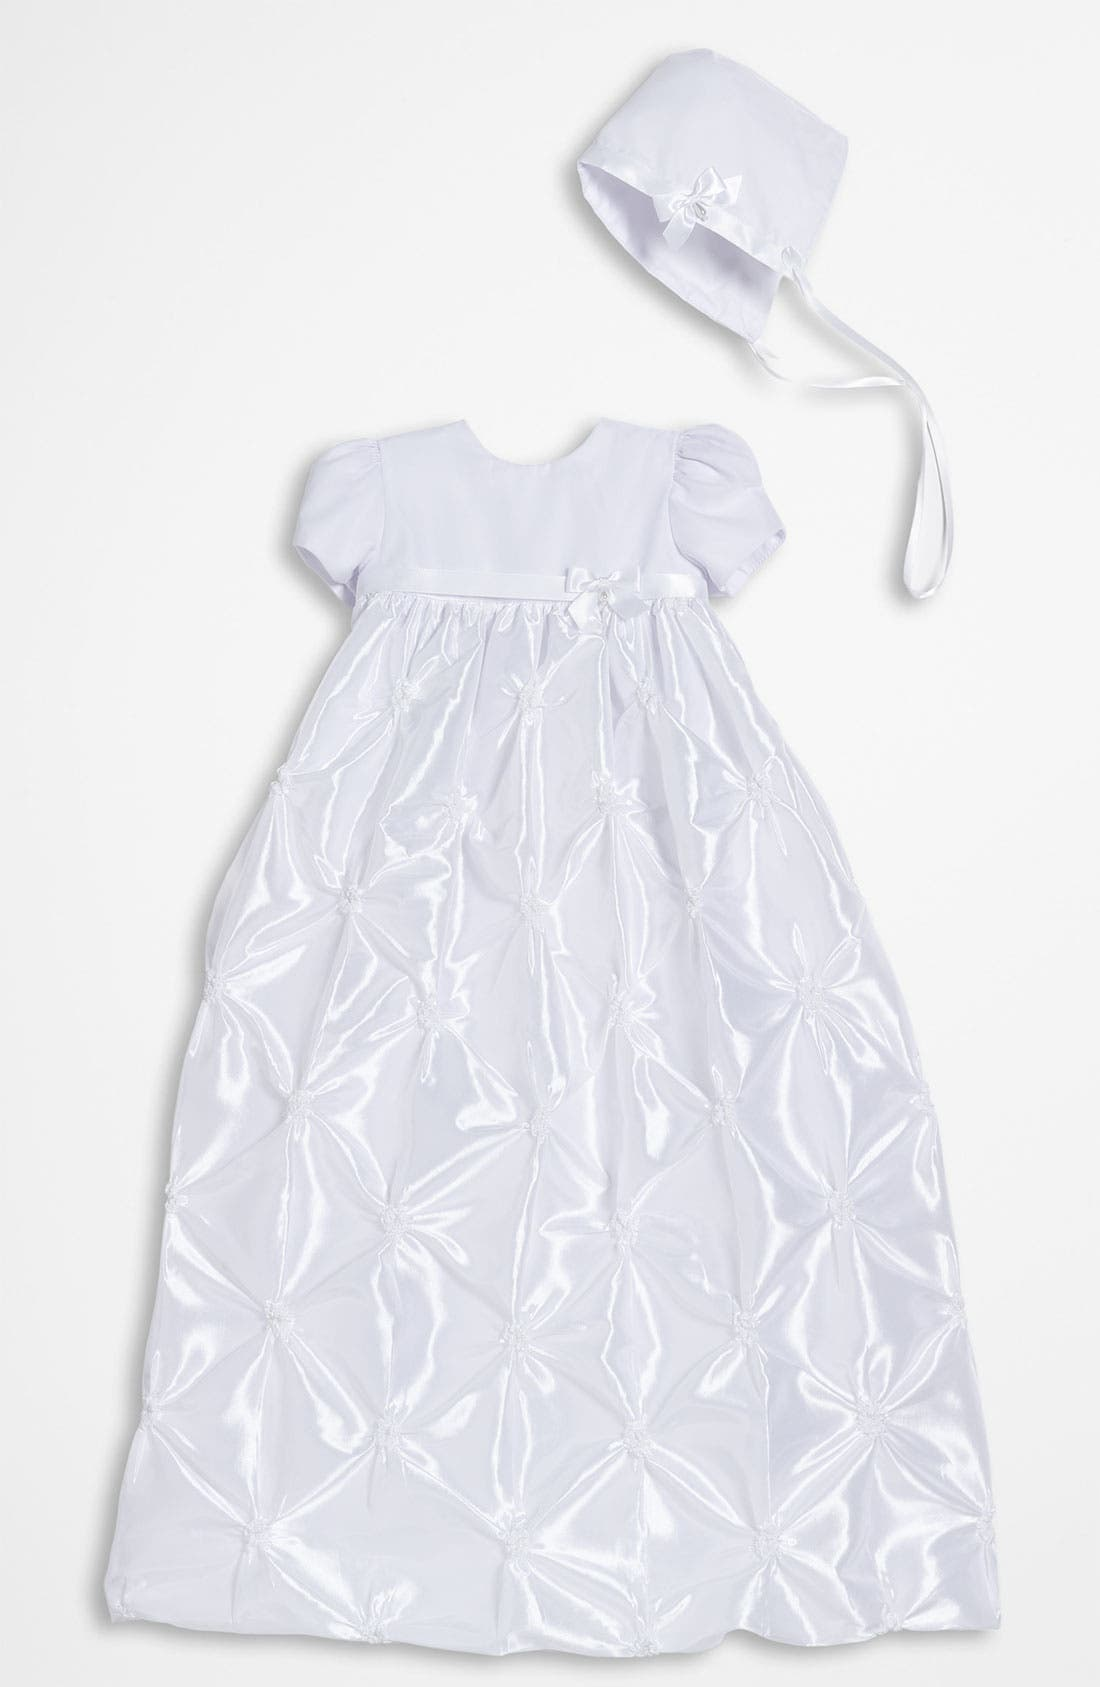 Main Image - Little Things Mean a Lot Taffeta Gown & Bonnet (Baby)